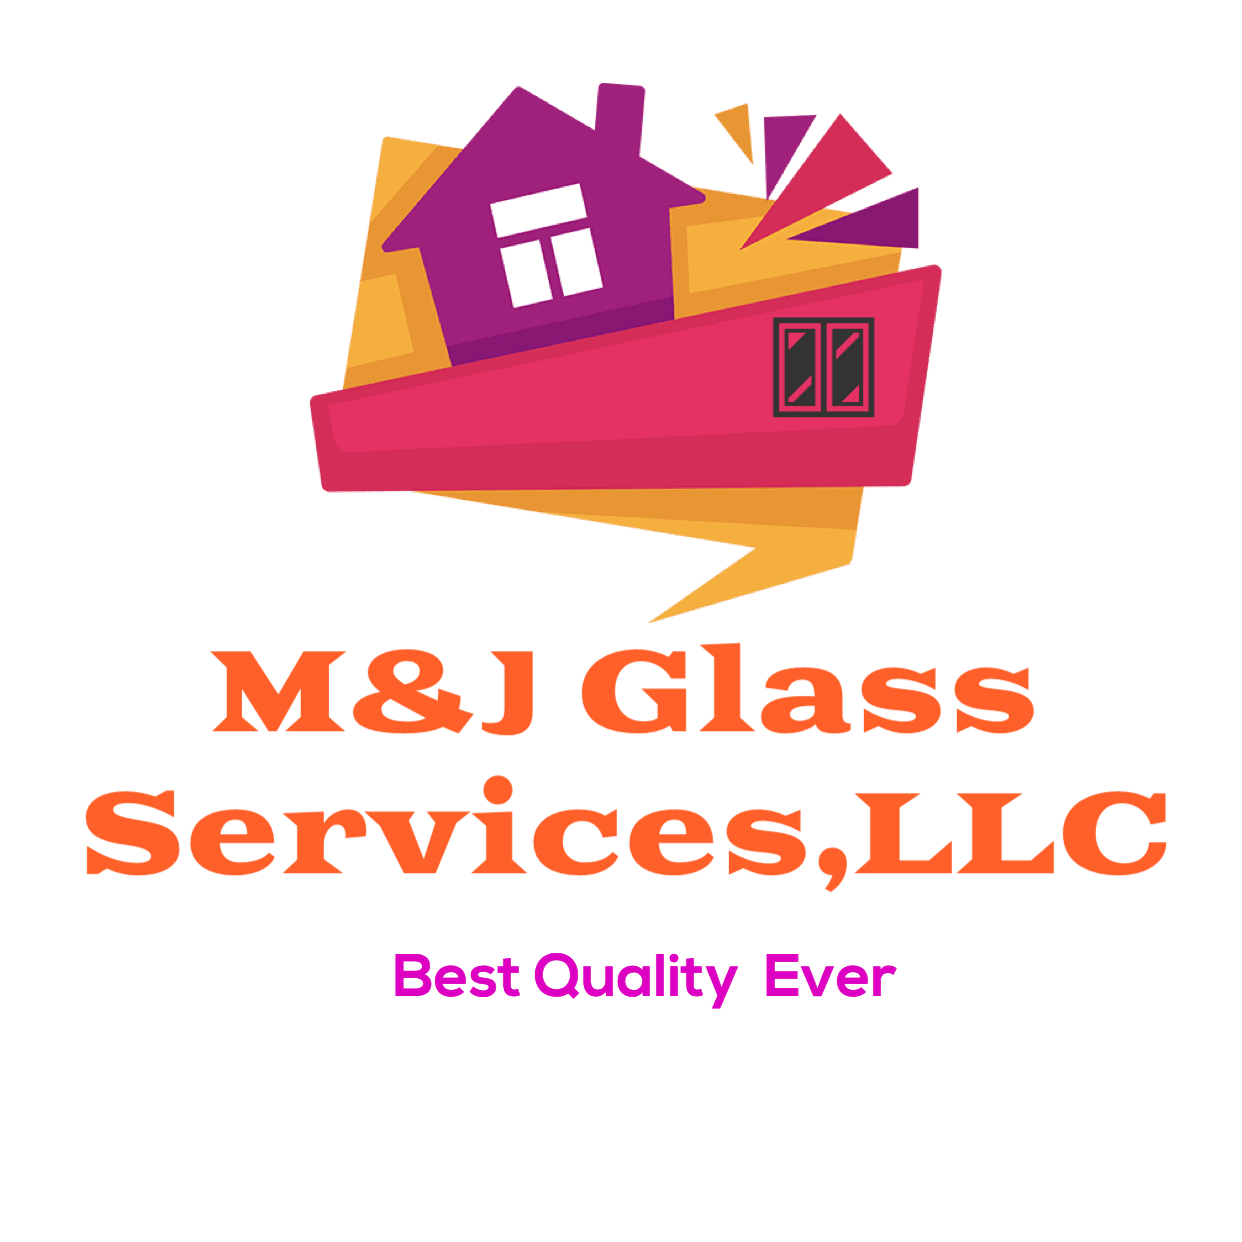 M&J Glass Services